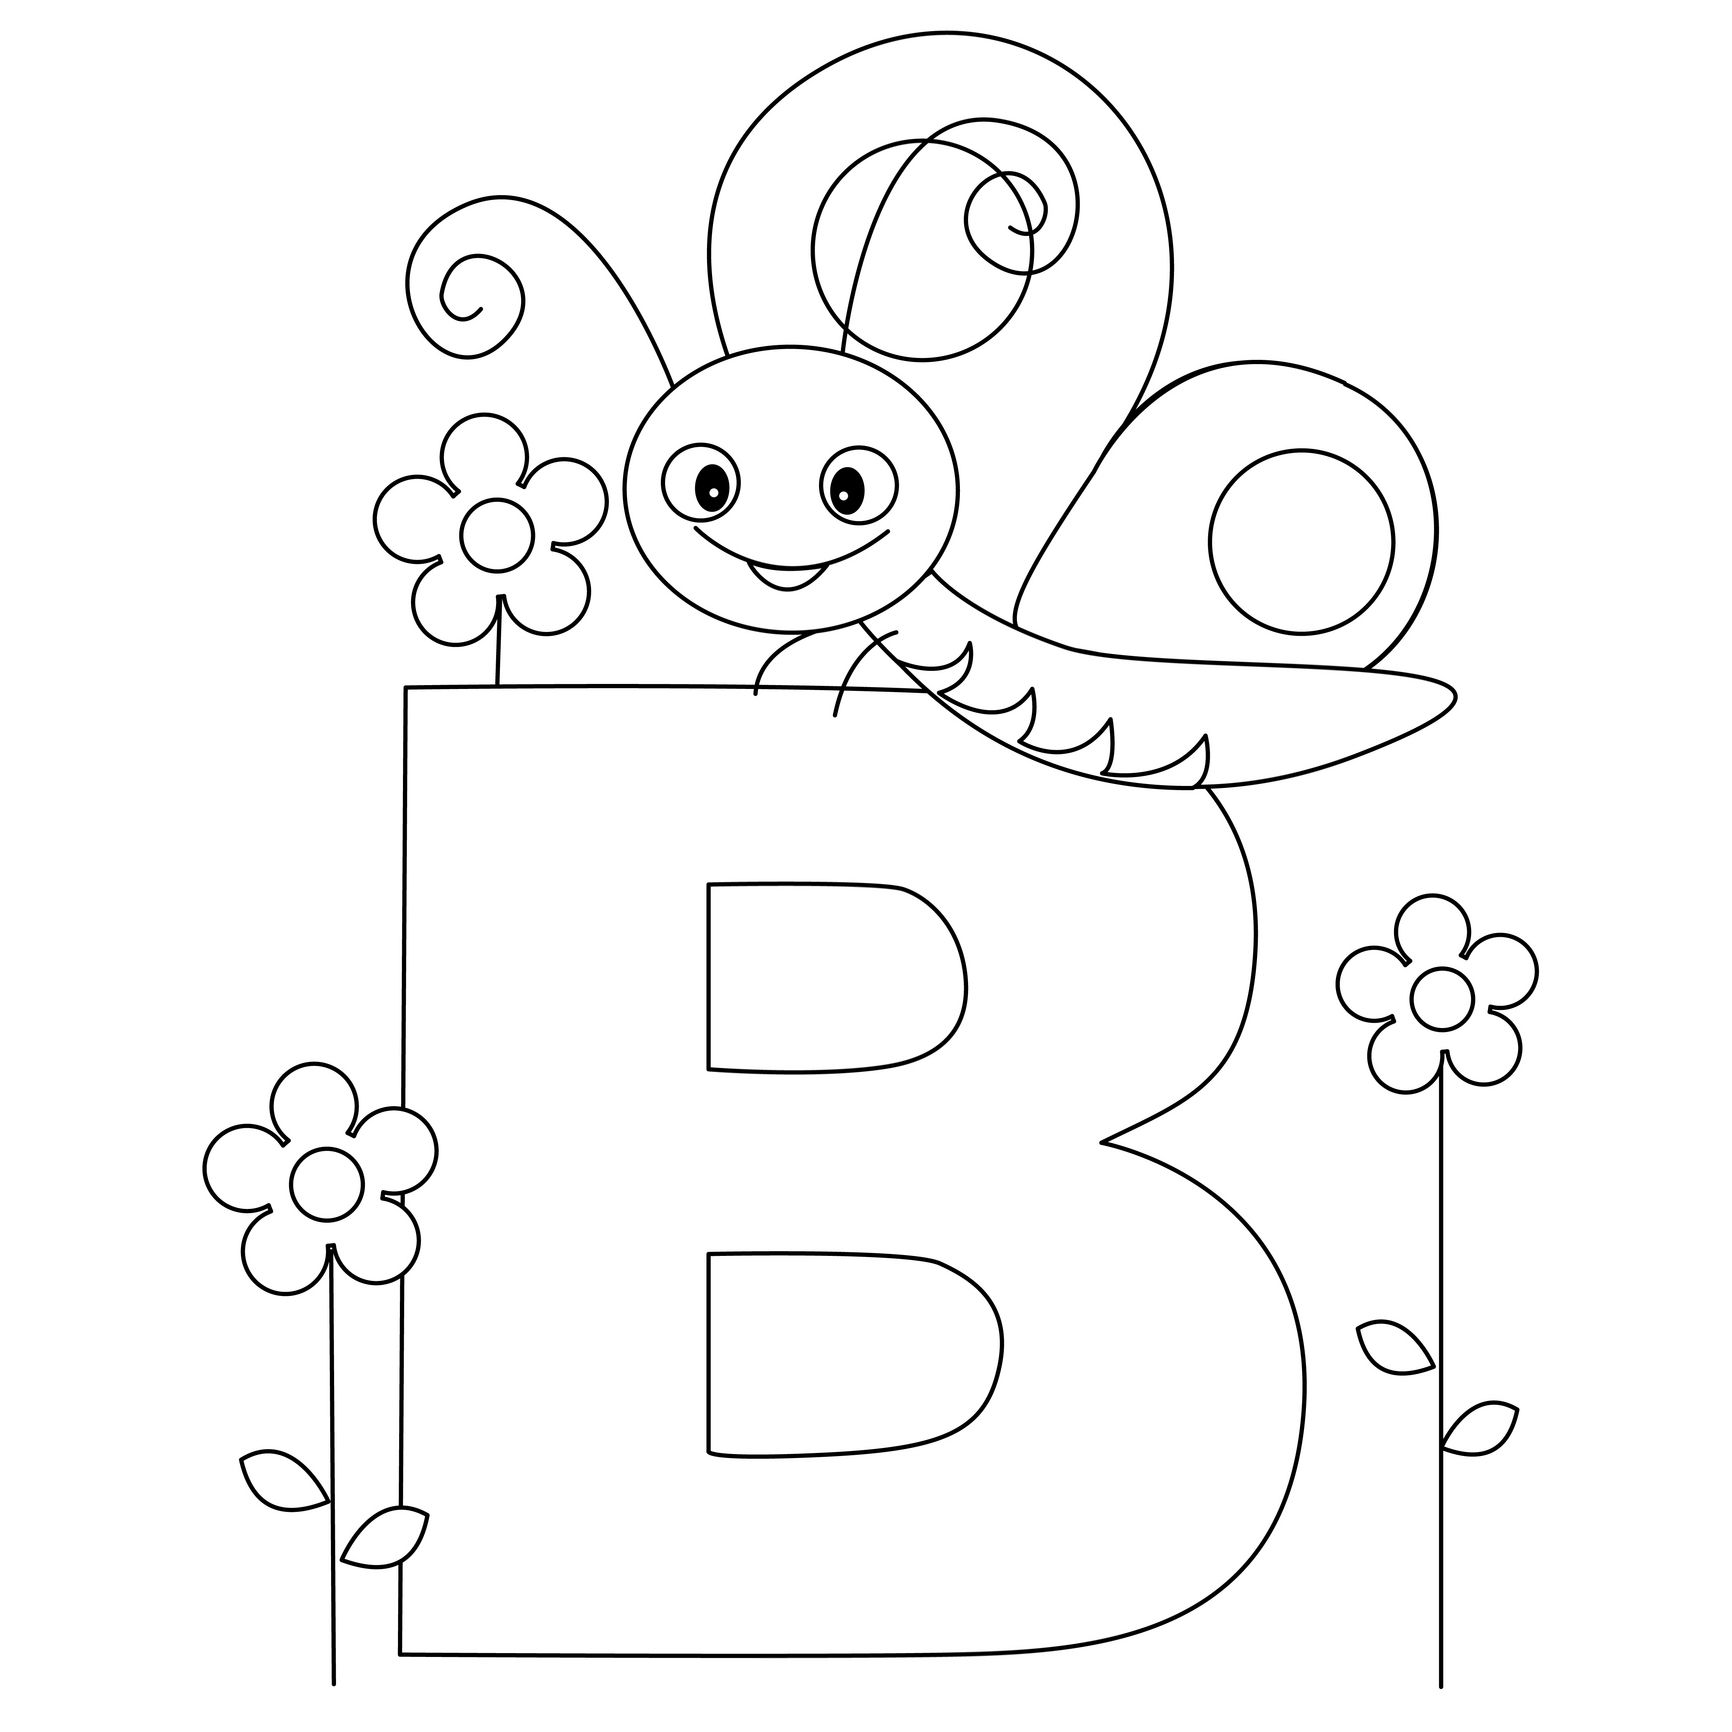 Pre k coloring pages alphabet - Animal Alphabet Letter B Is For Butterfly Here S A Simple Alphabet Coloring Pagesanimal